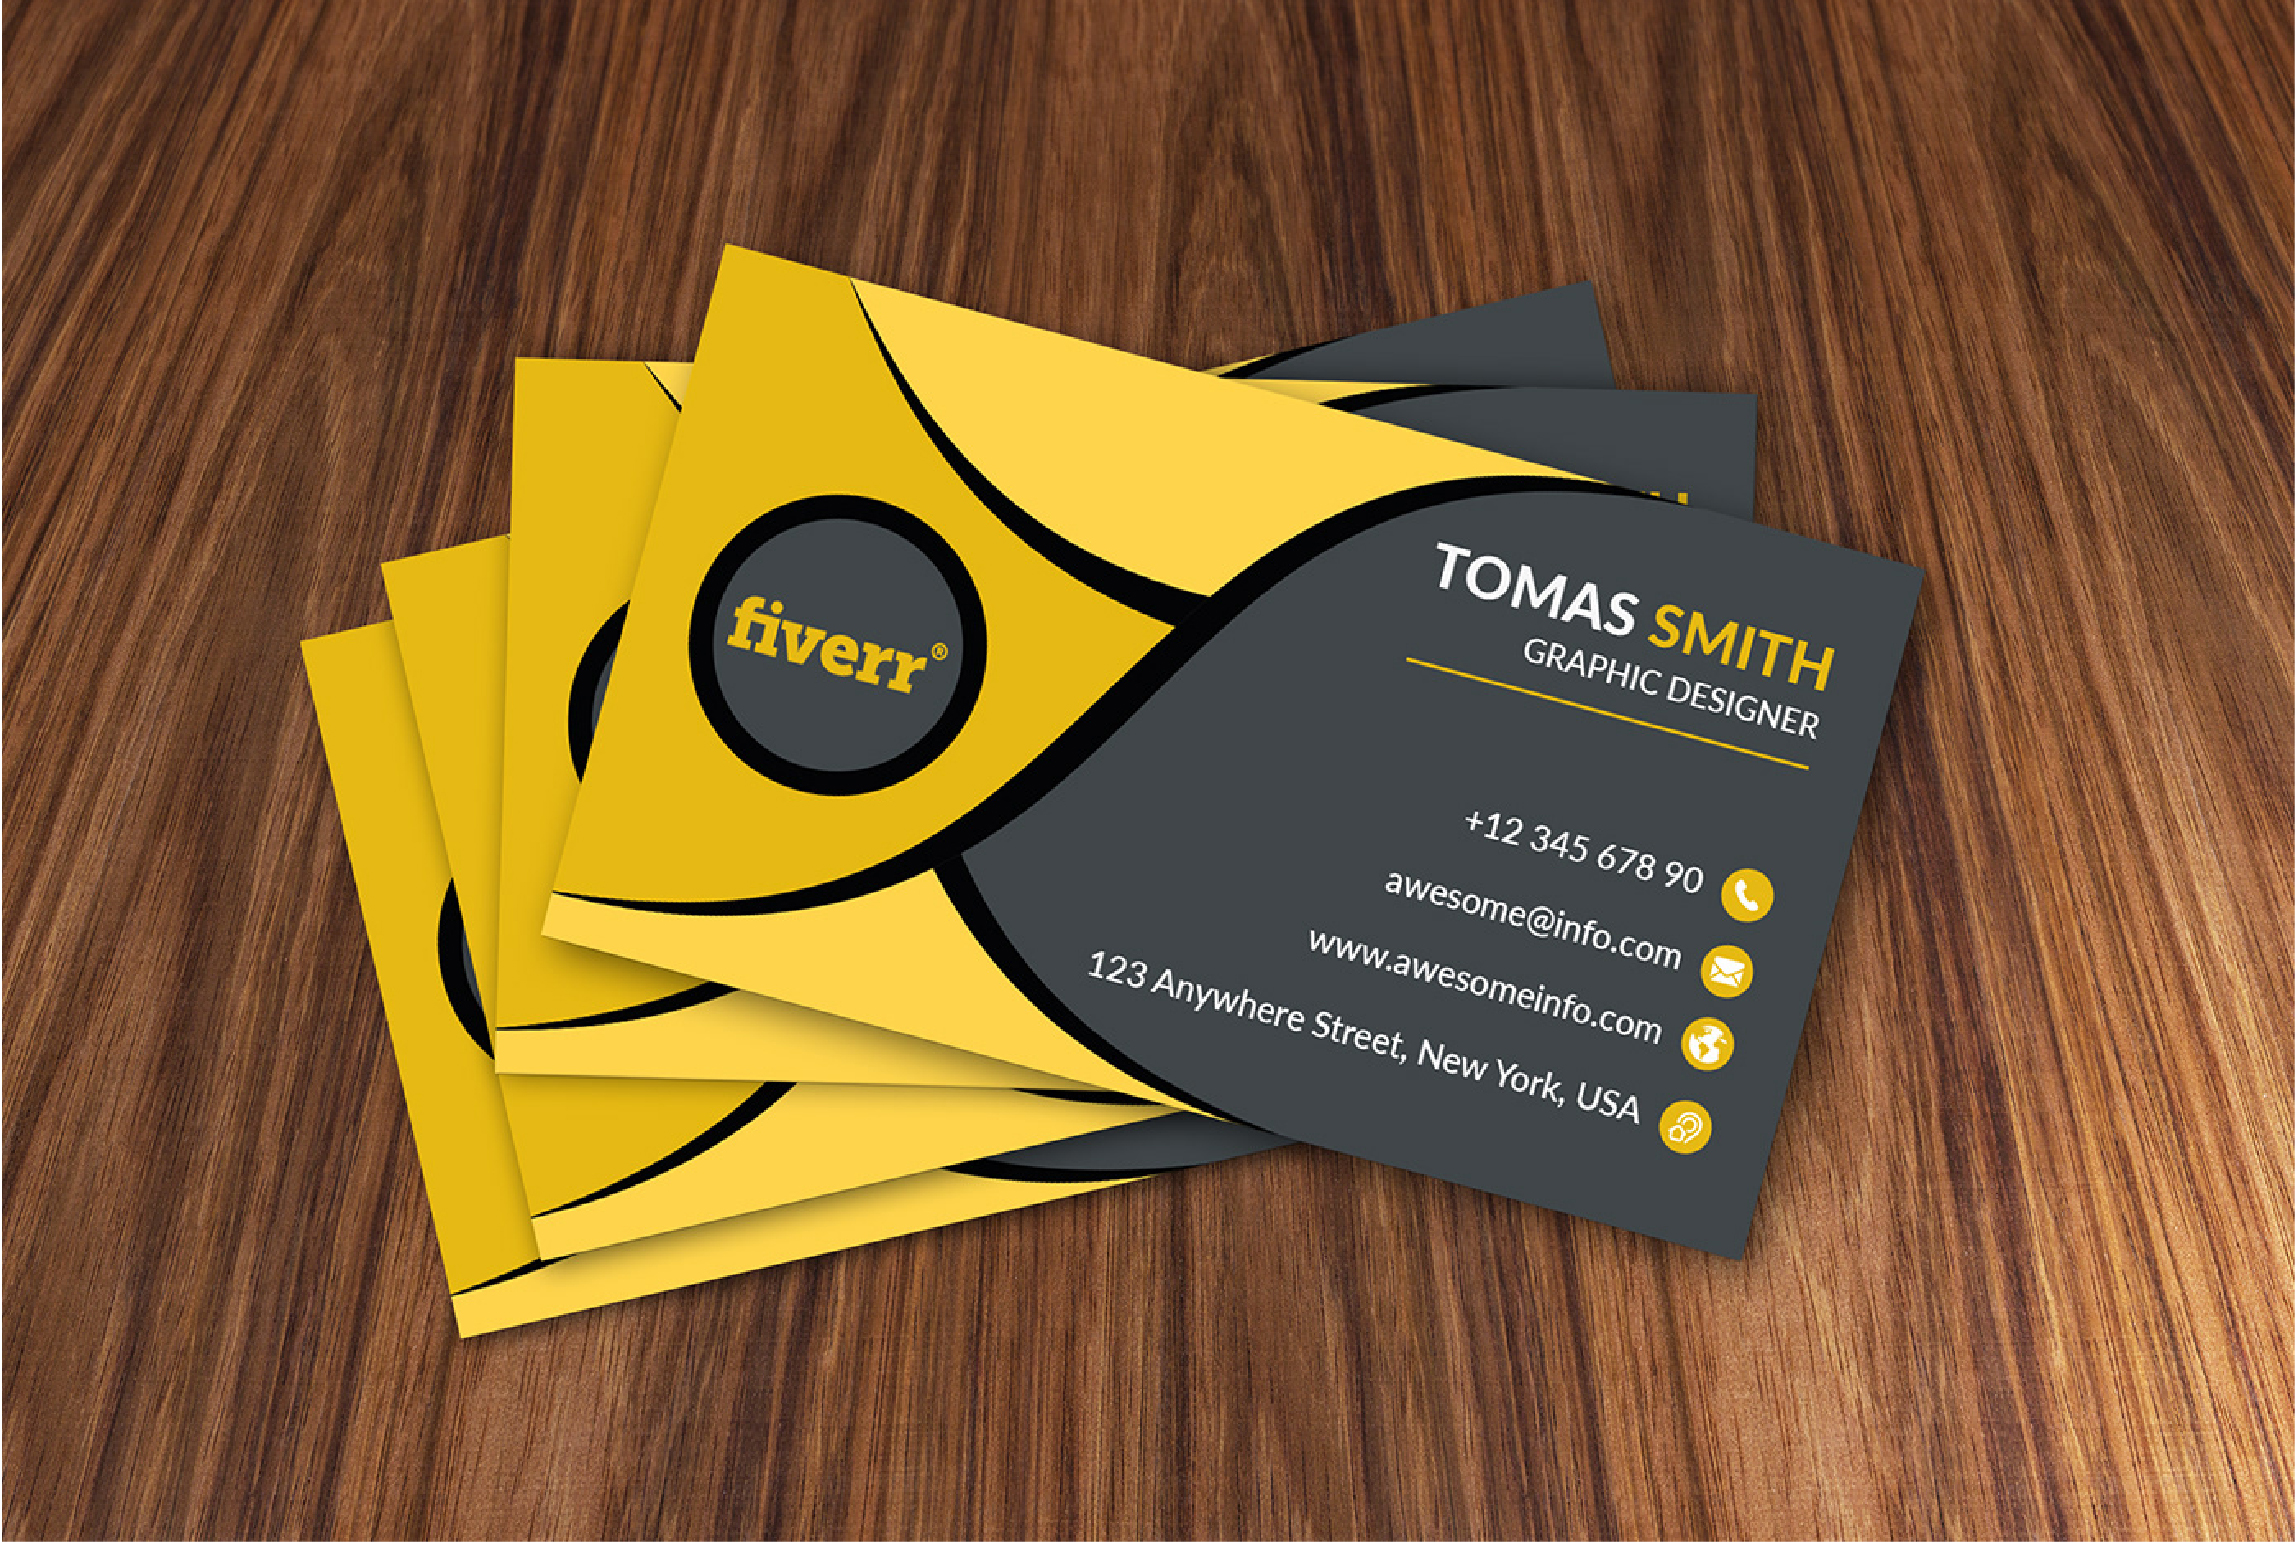 I will design professional business card and logo in 24 hours